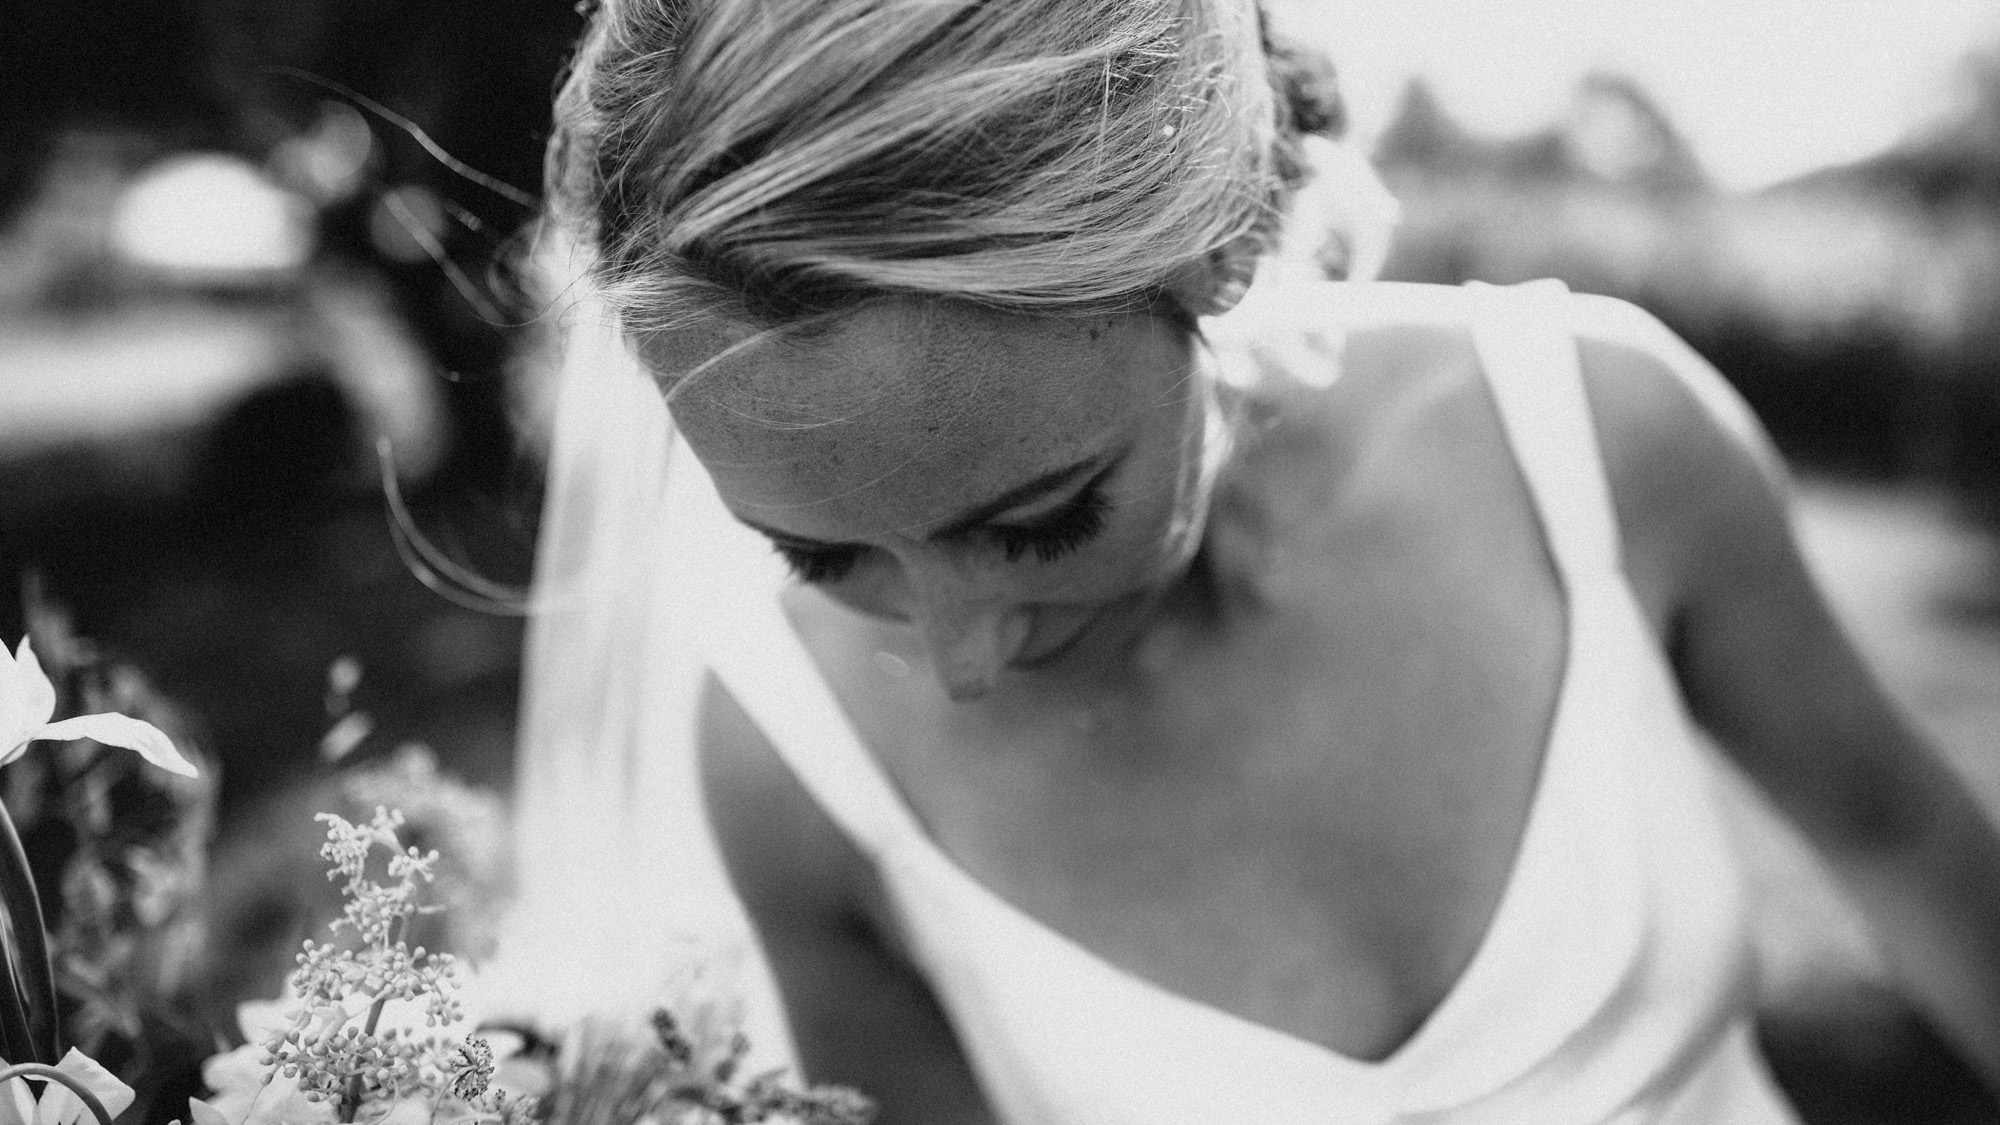 upstate_new_york_wedding_alec_vanderboom-0053.jpg